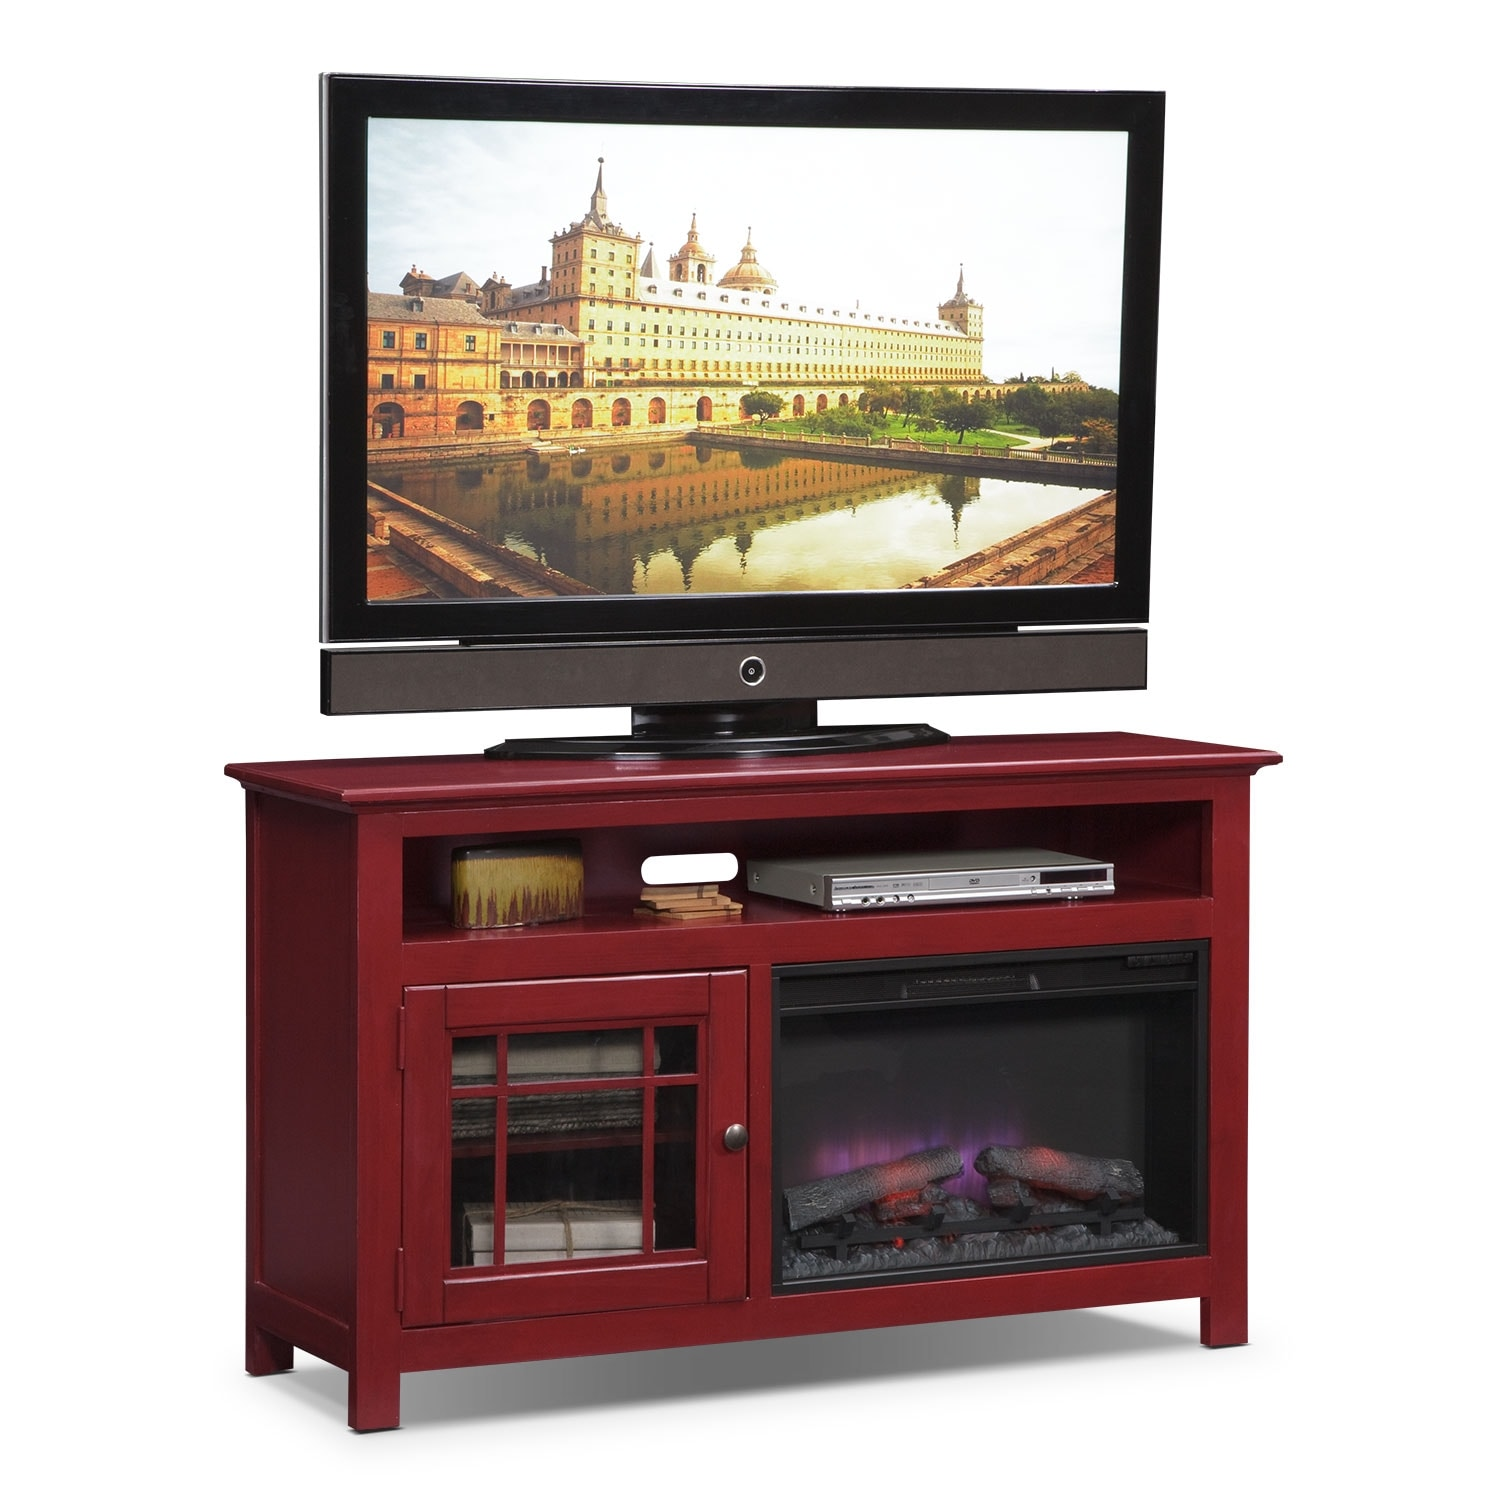 "Merrick 54"" Fireplace TV Stand with Traditional Insert - Red"